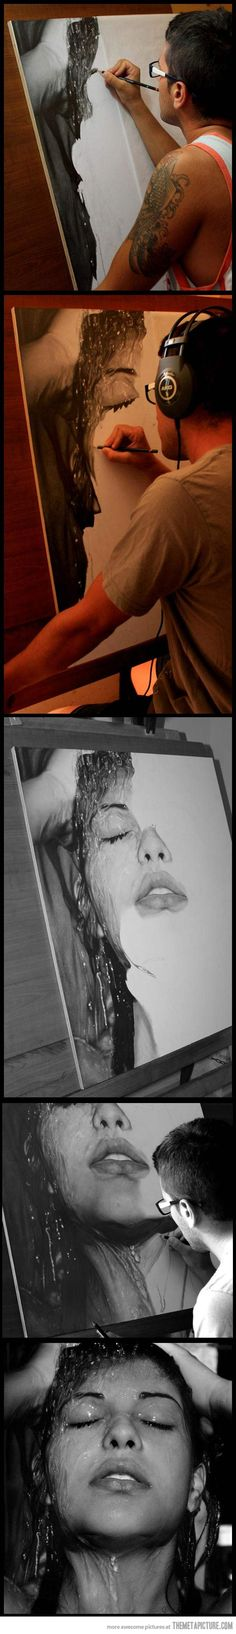 Mind-Blowing photorealistic pencil drawing…